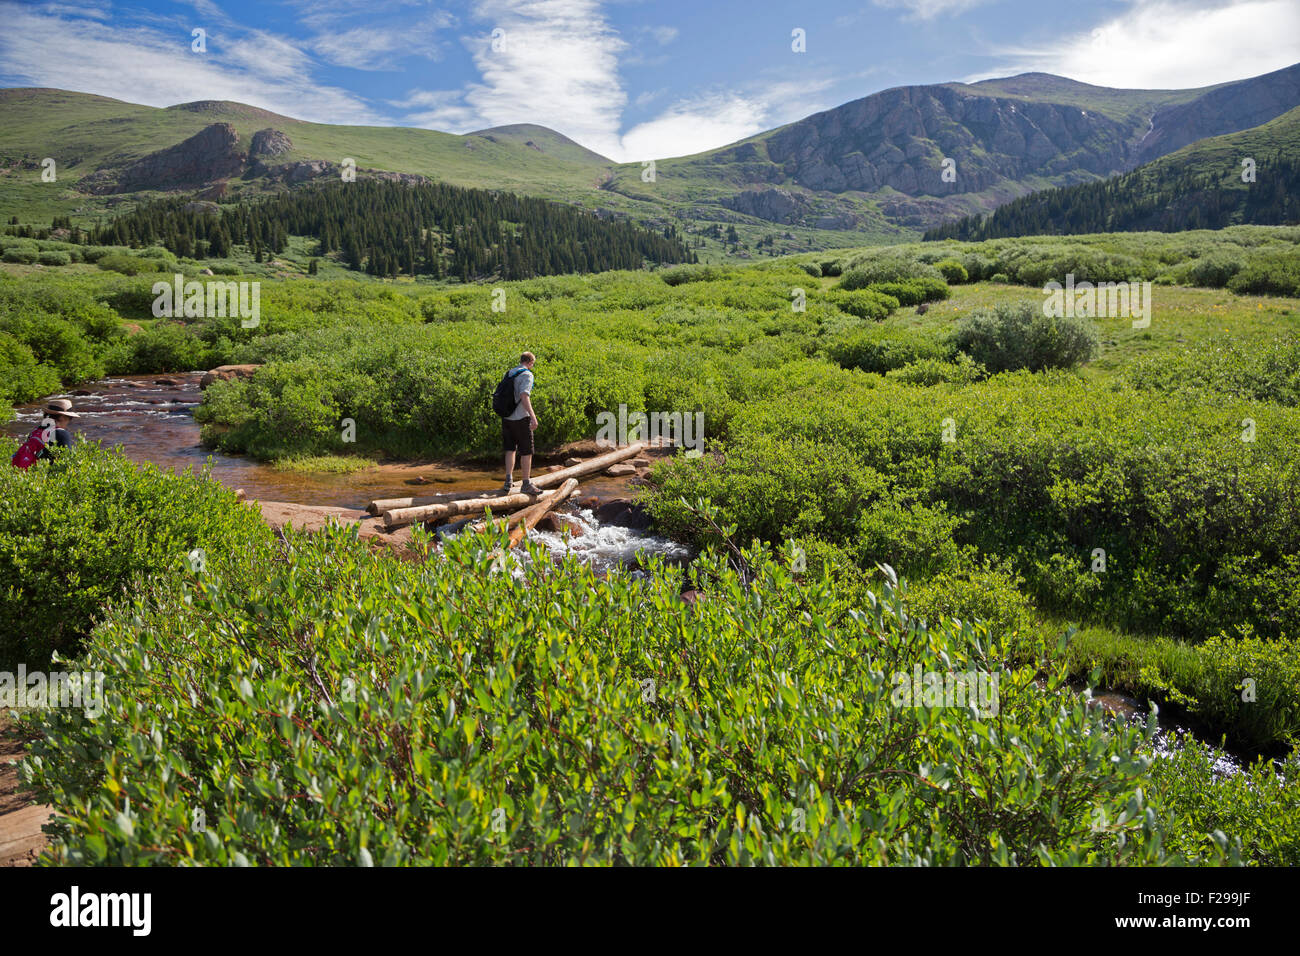 Georgetown, Colorado - A hiker balances on logs while crossing a stream on the trail from Guanella Pass to Mt. Bierstadt. - Stock Image